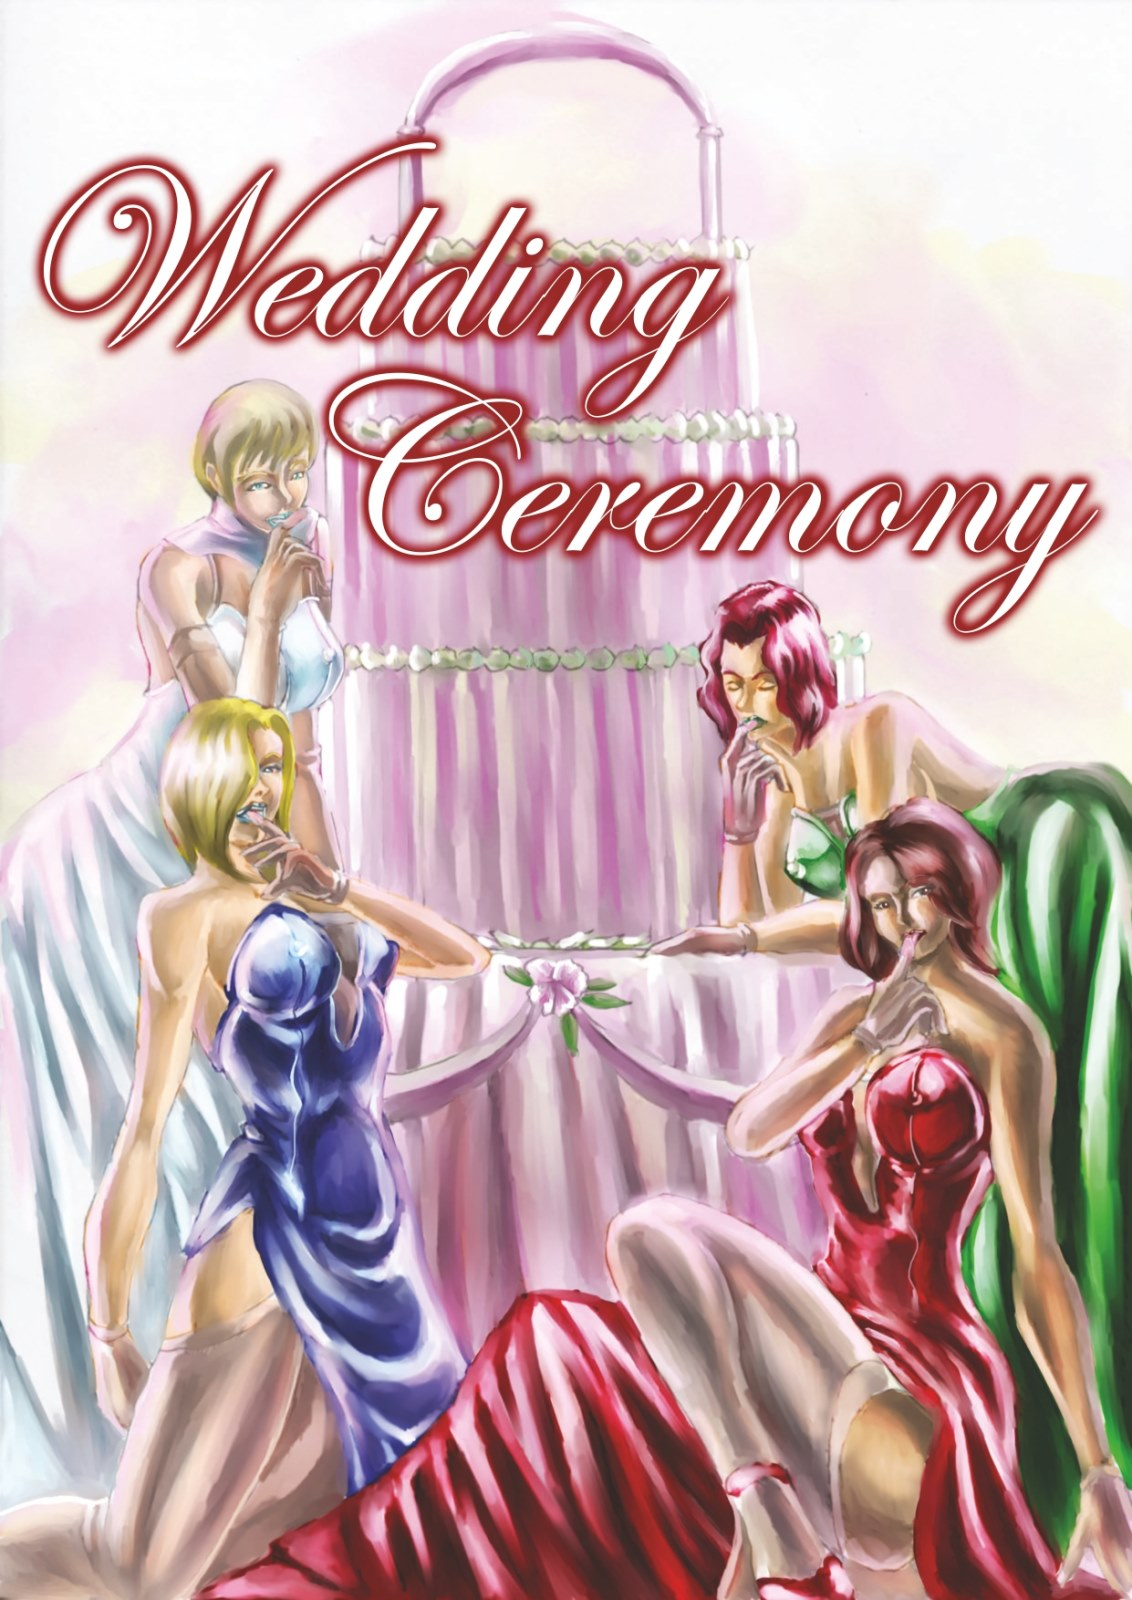 Wedding Ceremony- Mind Control porn comics 8 muses